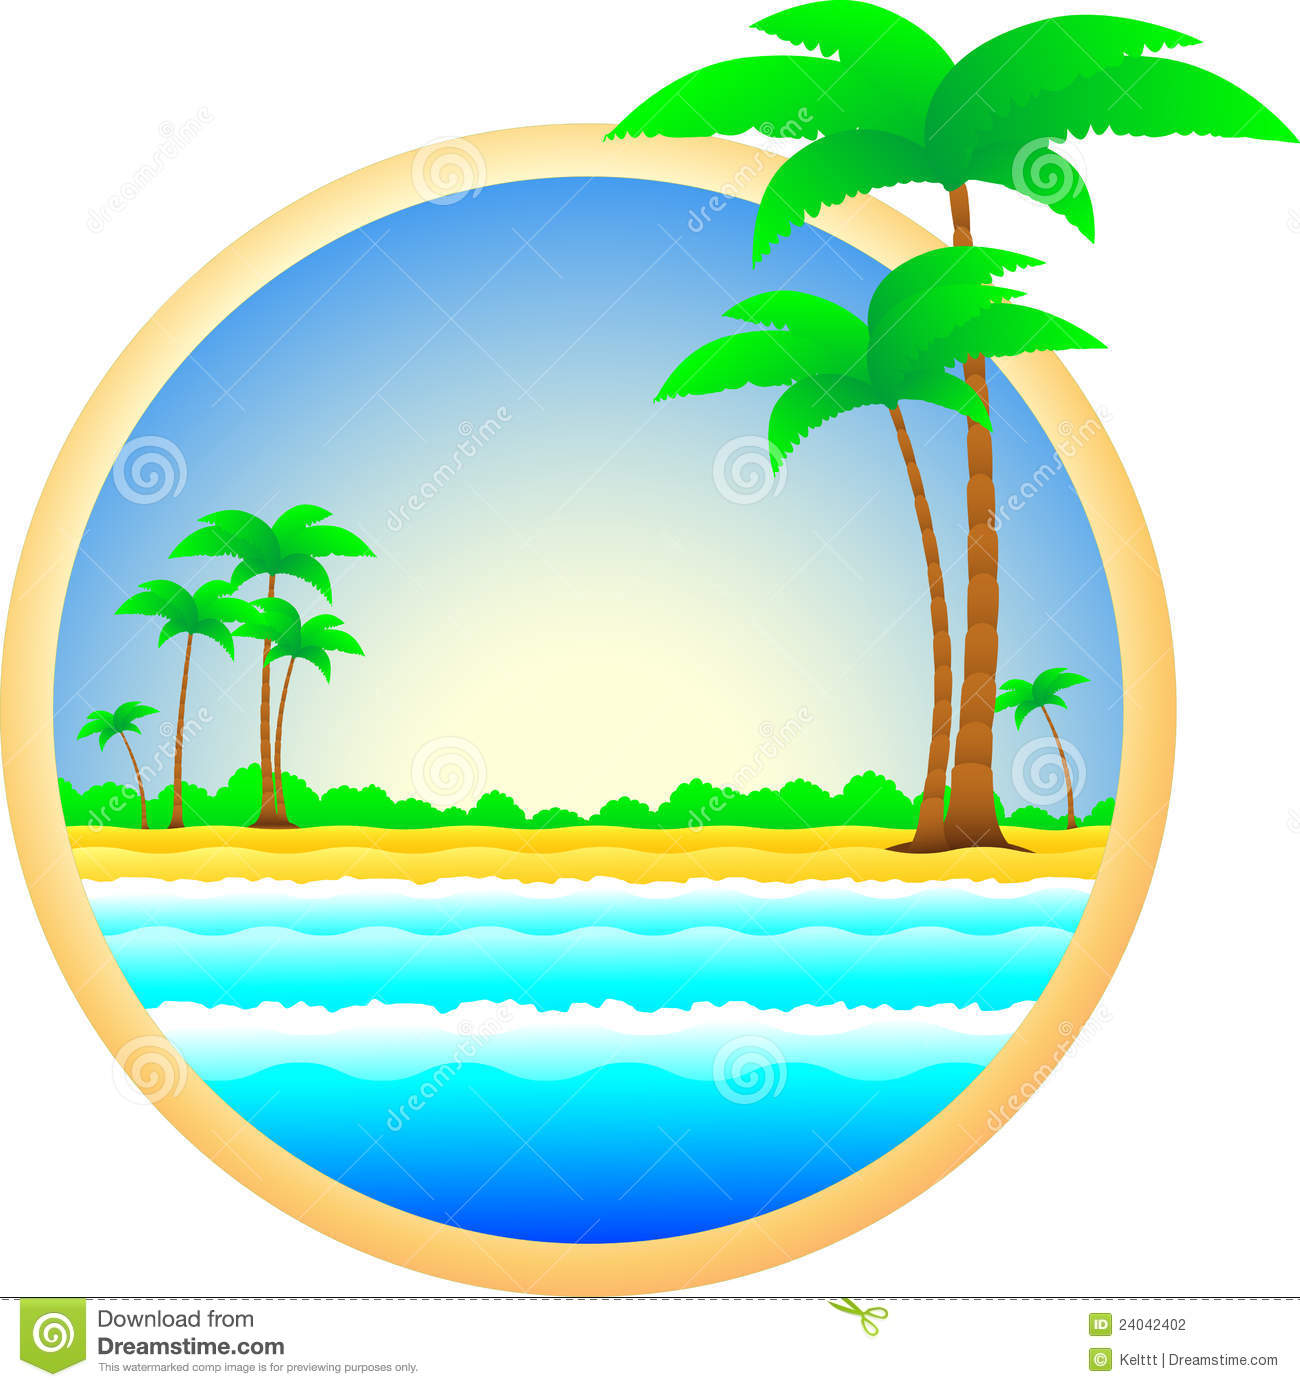 Resort clipart paradise Clipart Panda Images Free Resort